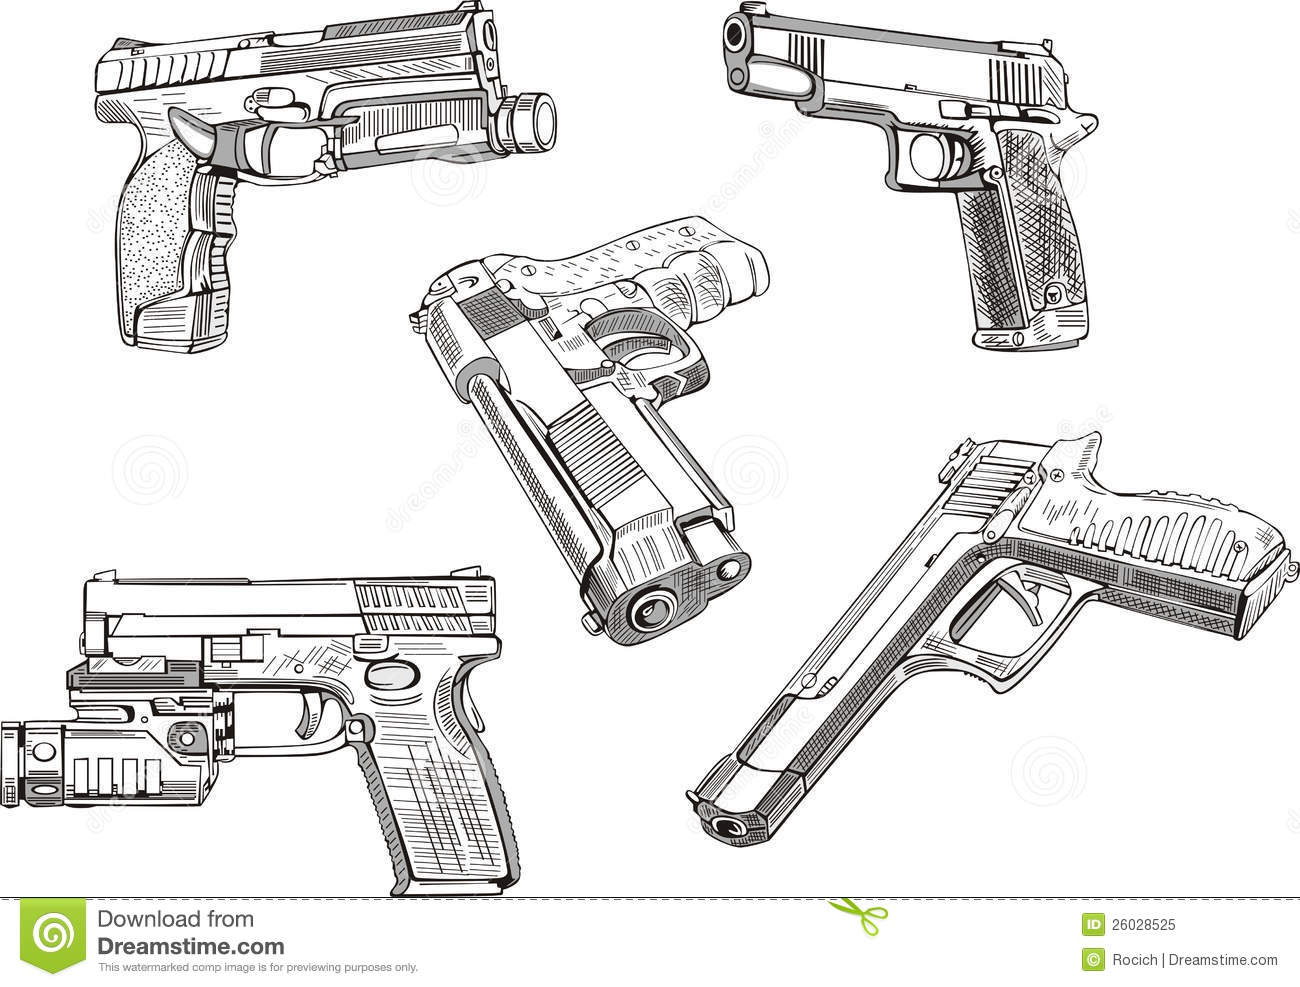 Gun sketches set of black and white vector illustrations